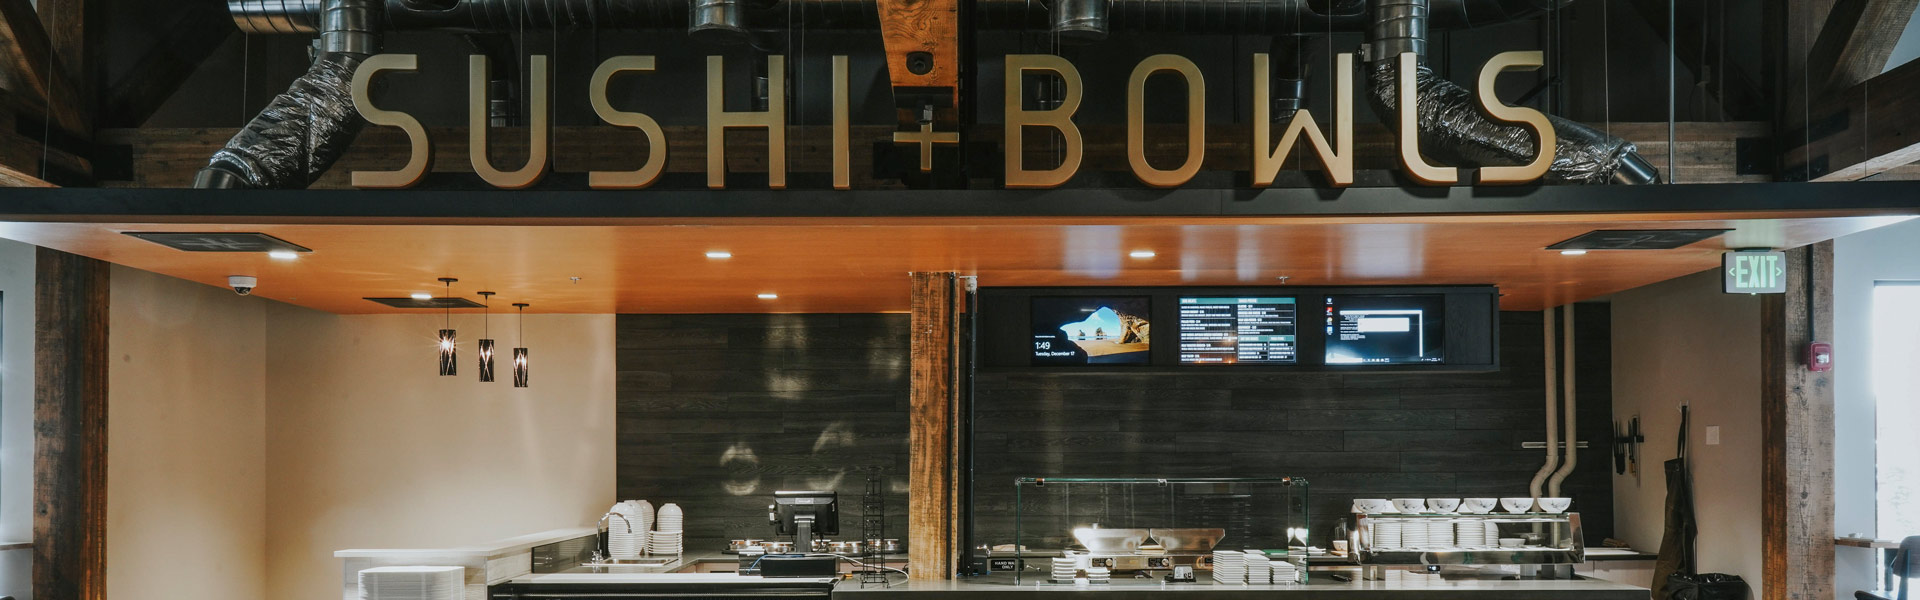 Sushi + Bowls sign over the kitchen